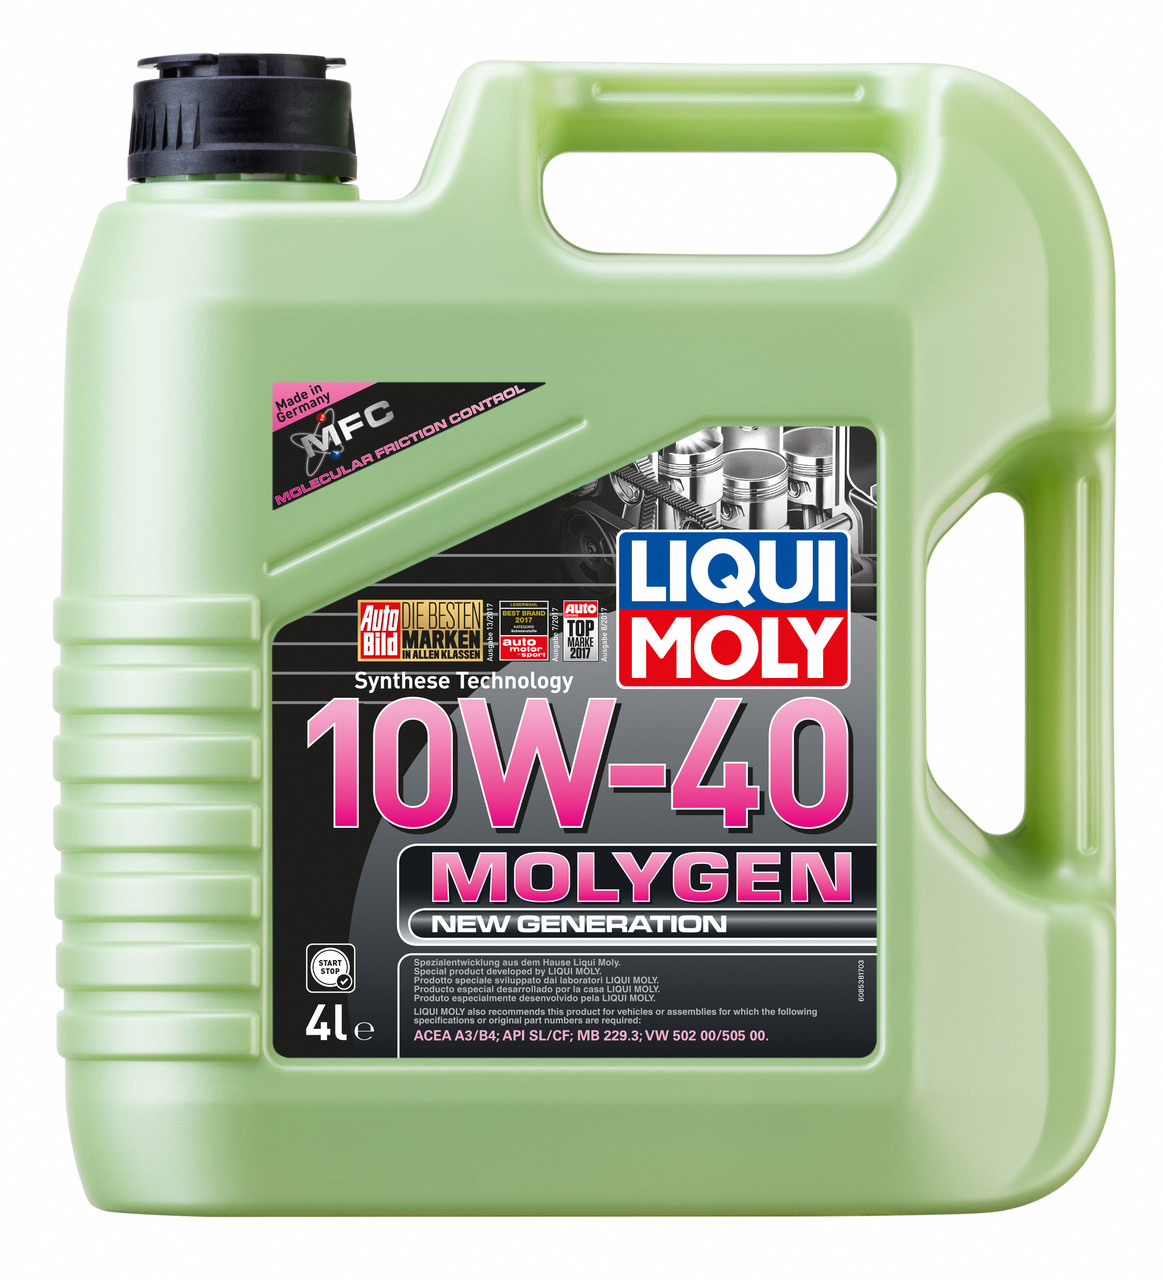 Моторное масло Molygen New Generation 10W-40,4L, LIQUI MOLY